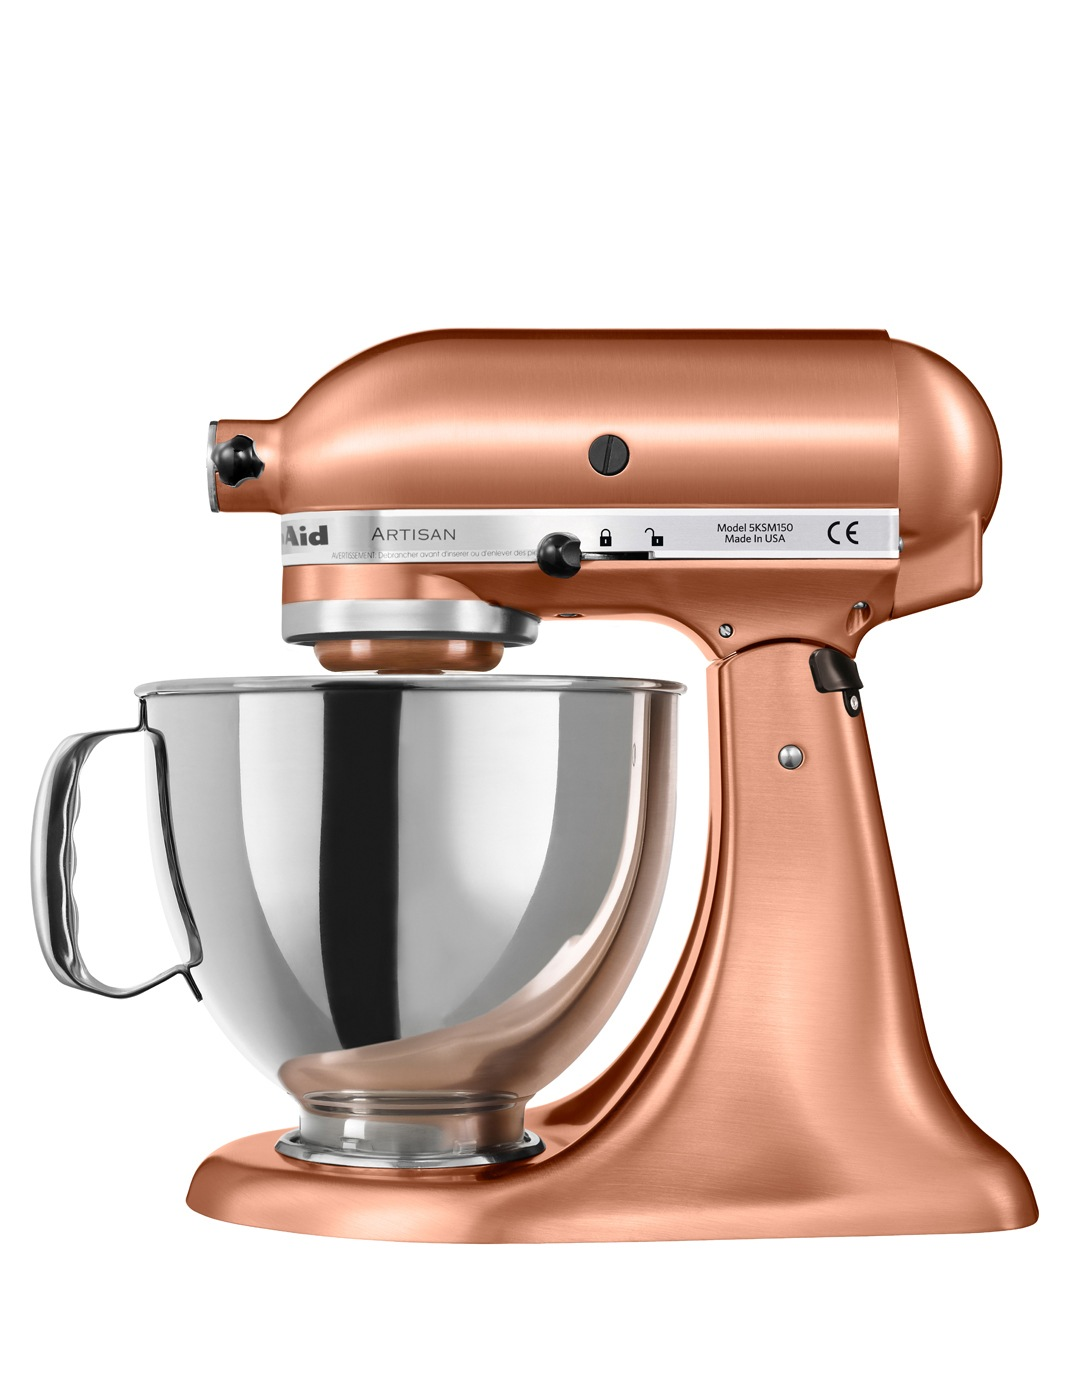 Kitchenaid Ksm150 Artisan Stand Mixer Satin Copper